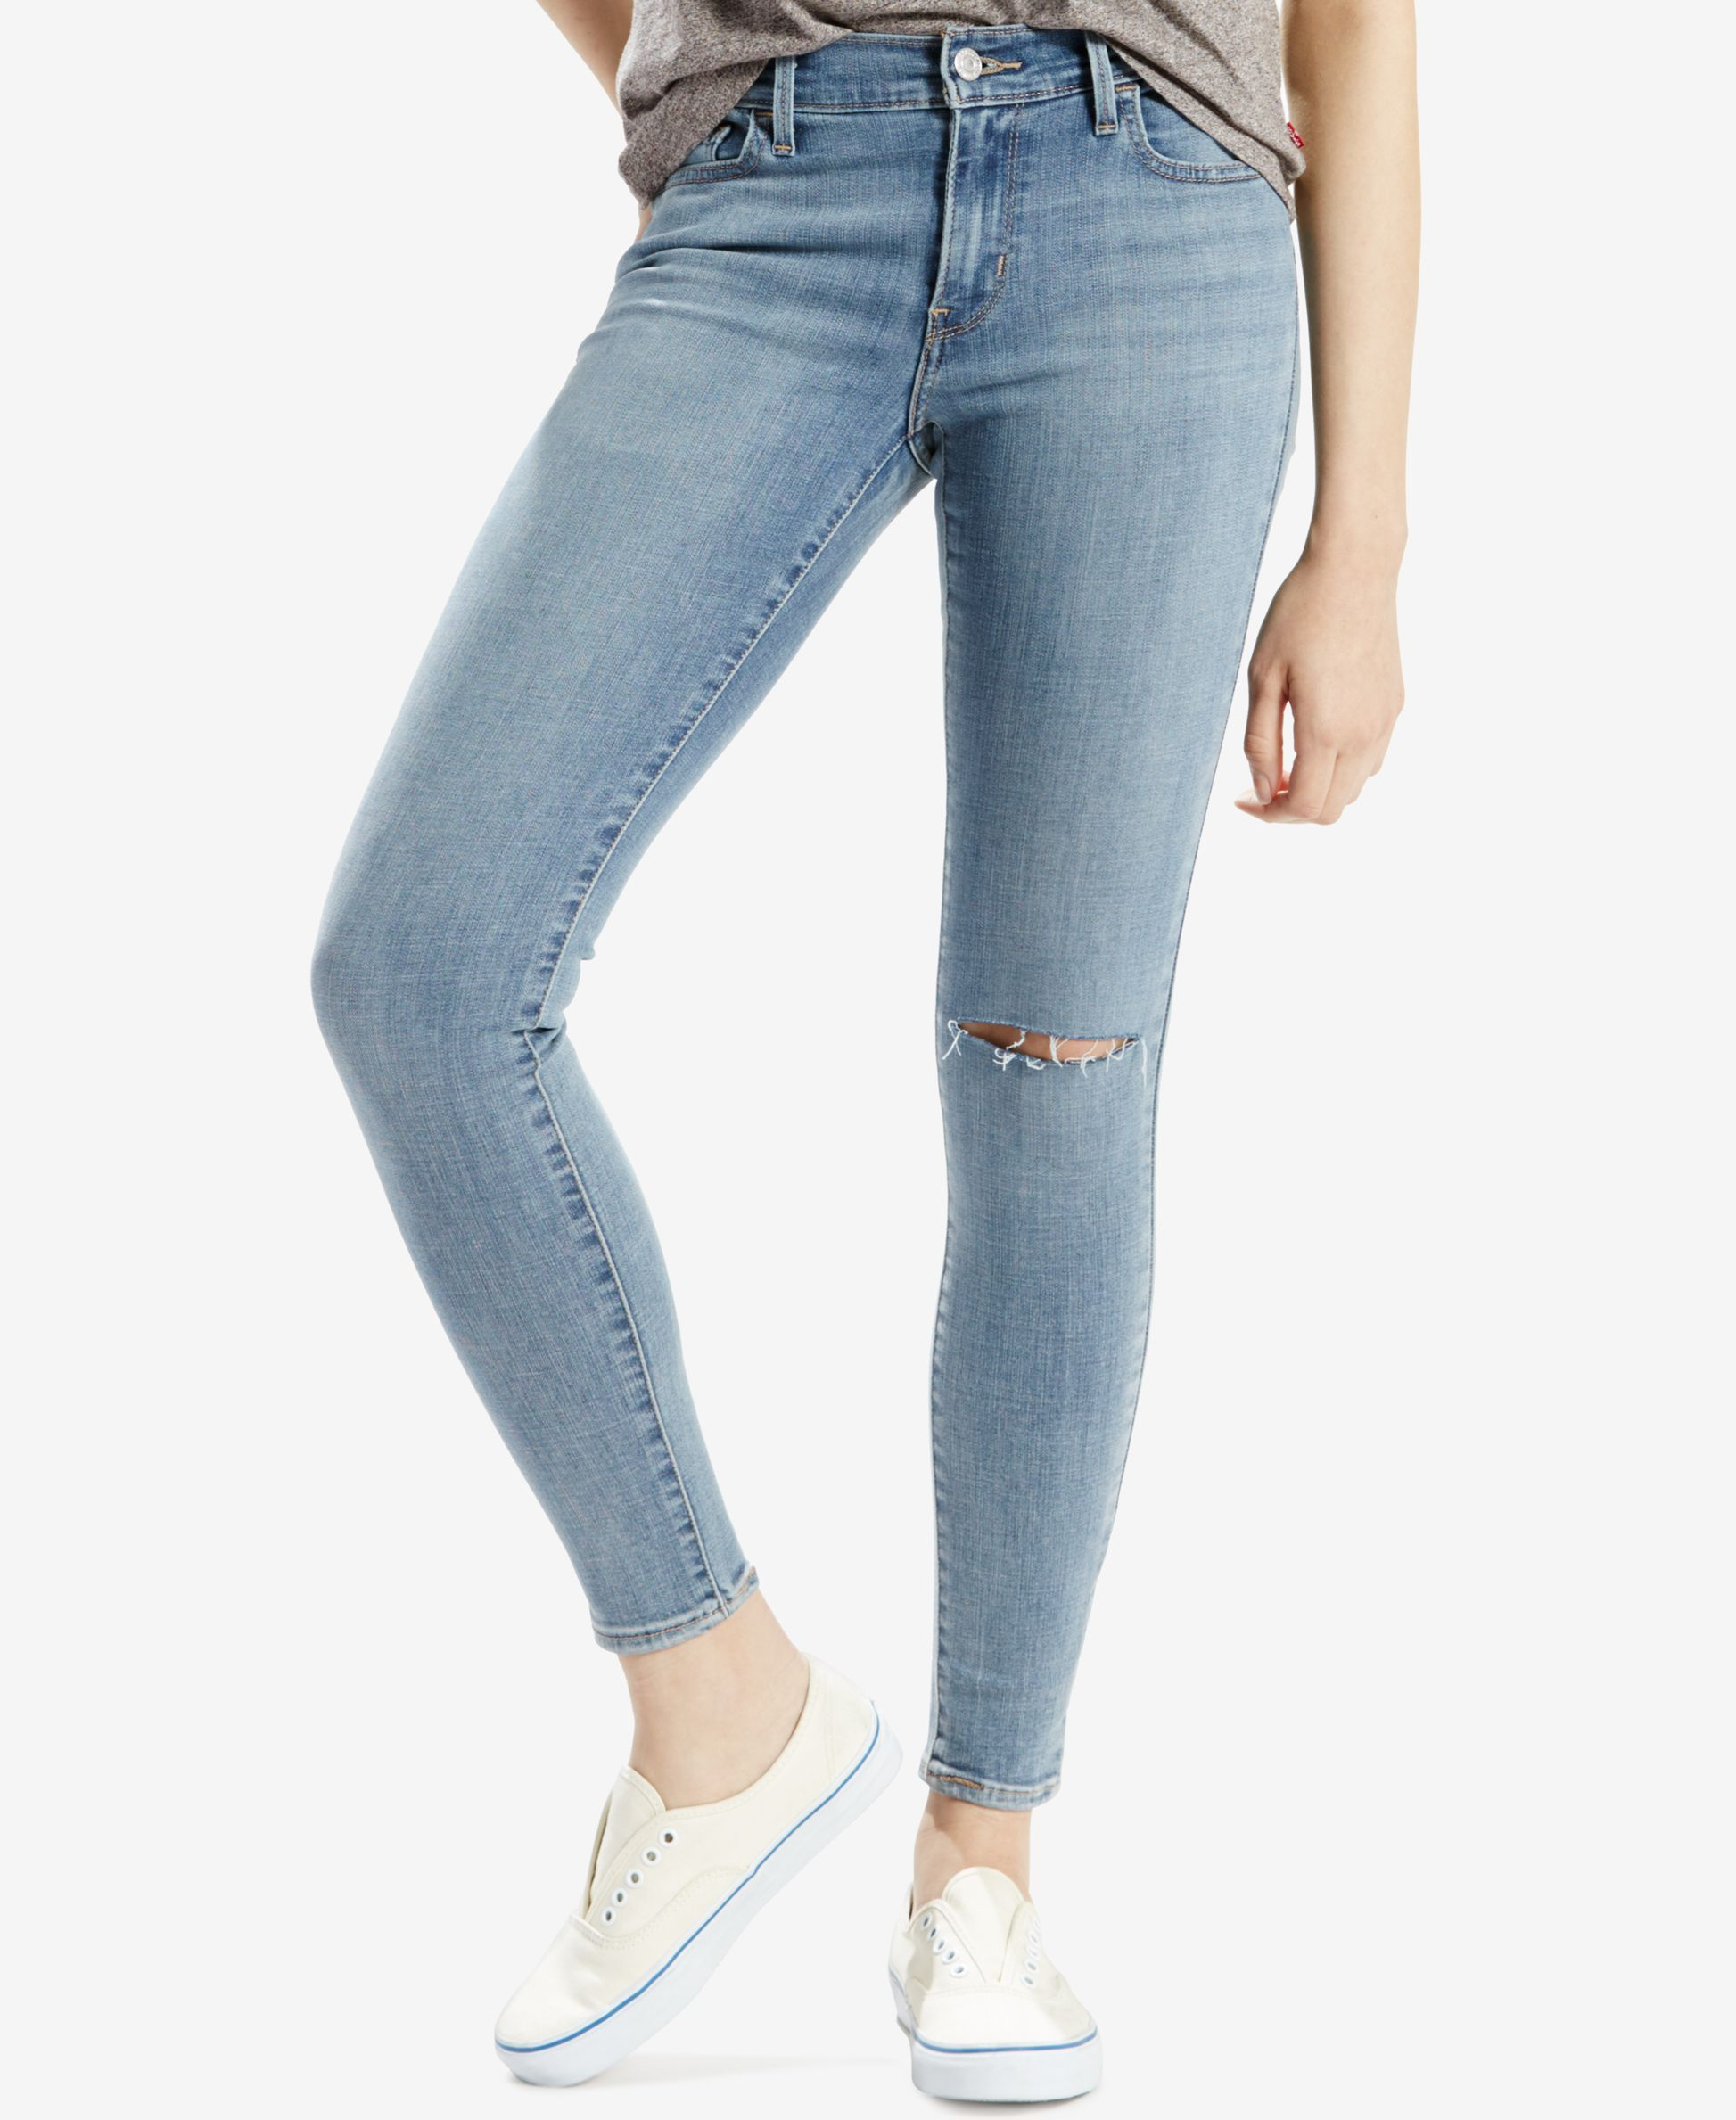 9405c902a5 Levi's 710 Ripped Super Skinny Light Blue Wash Jeans | Products ...